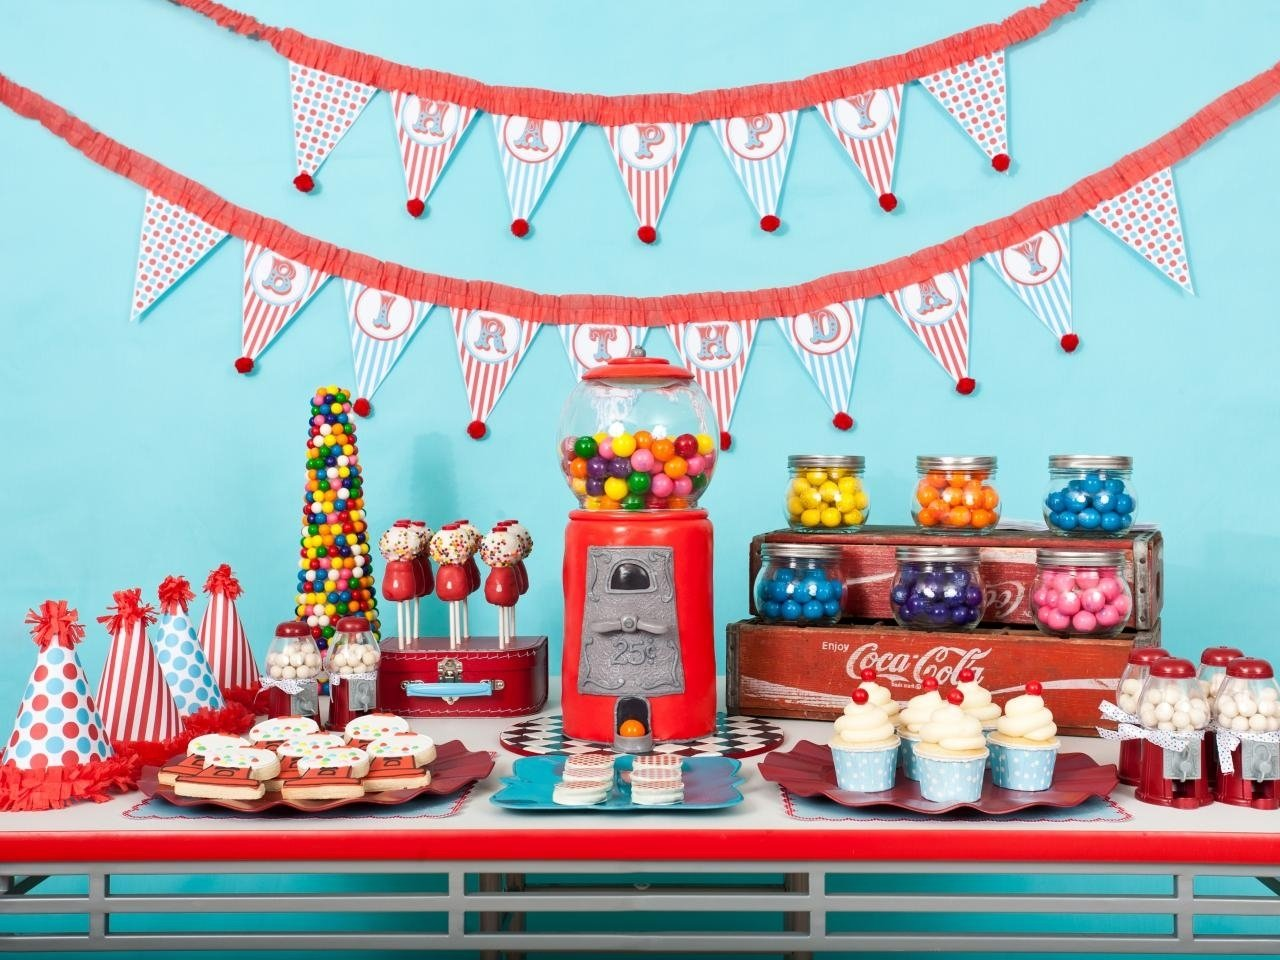 10 Lovely Birthday Party Ideas For A 12 Year Old Boy best boy birthday party theme decorations 12 year old birthday party 8 2020